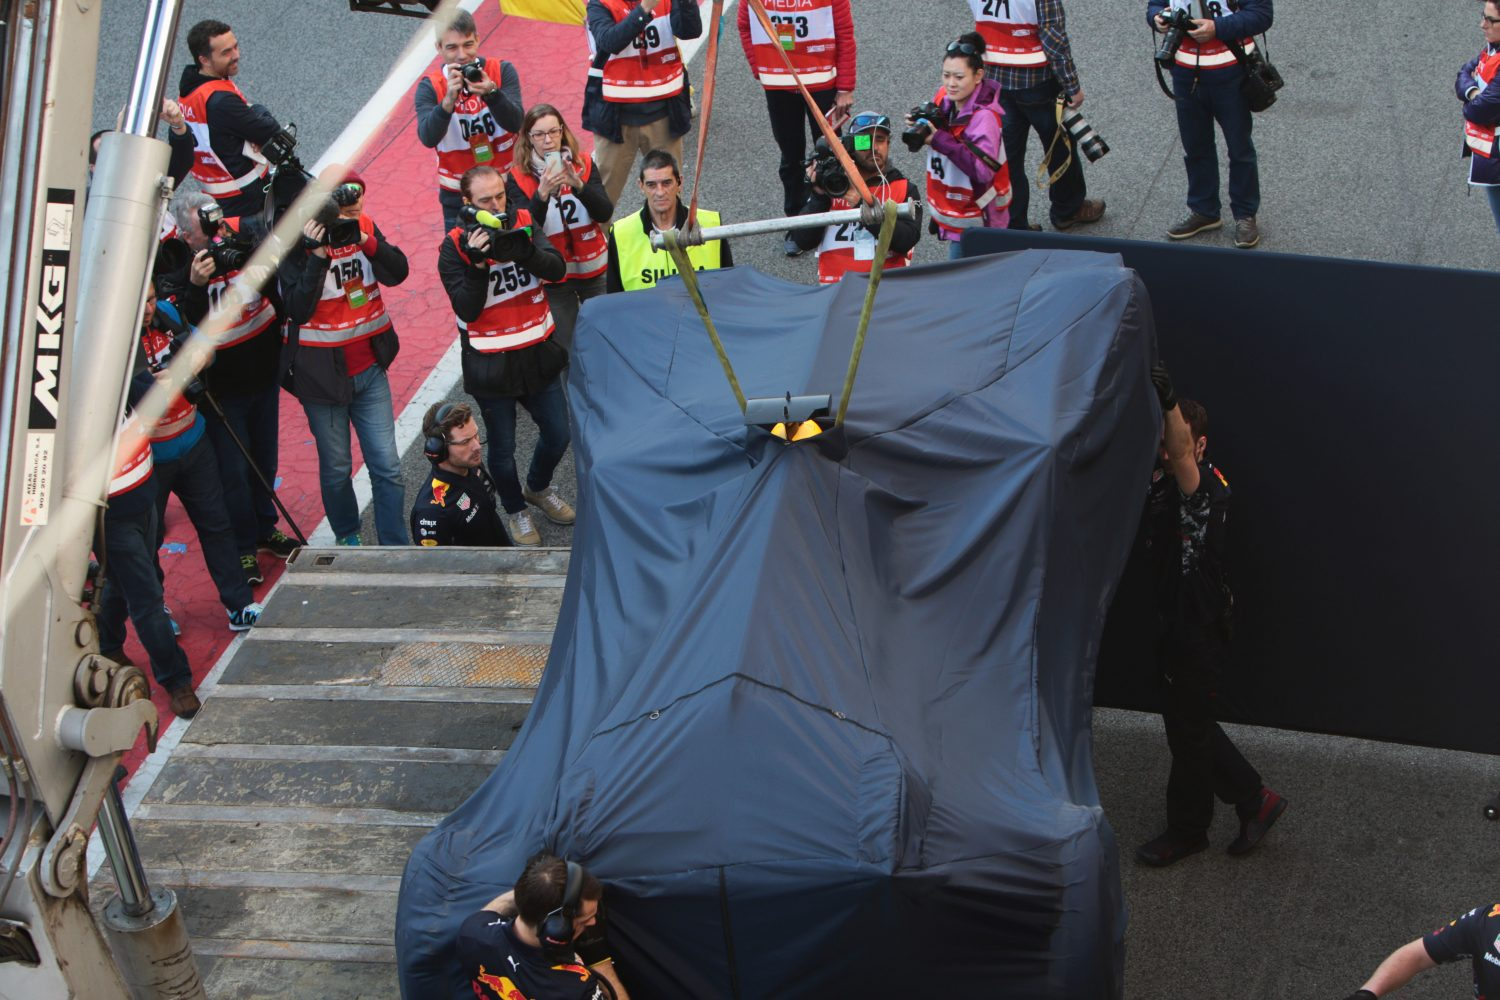 Formula One Testing, Barcelona, Circuit de Catalunya, Barcelona, Spain, Monday 27 February 2017 - The Red Bull Racing RB13 of Daniel Ricciardo (AUS) Red Bull Racing is recovered back to the pits on the back of a truck.